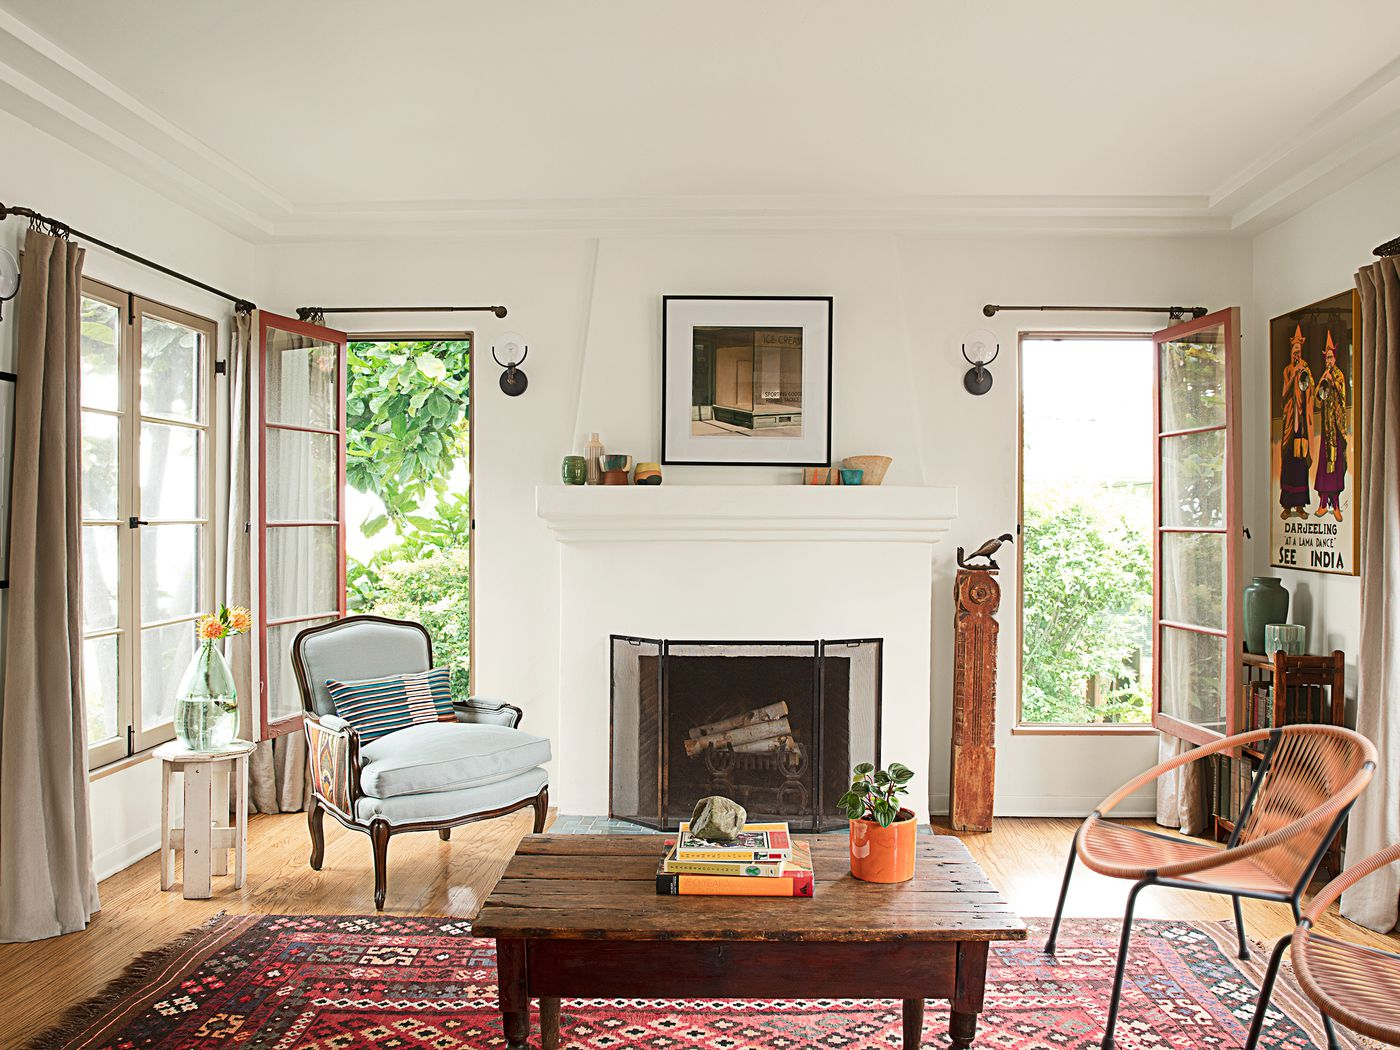 Spanish Revival Renovation A Little More Open A Lot More Livable This Old House